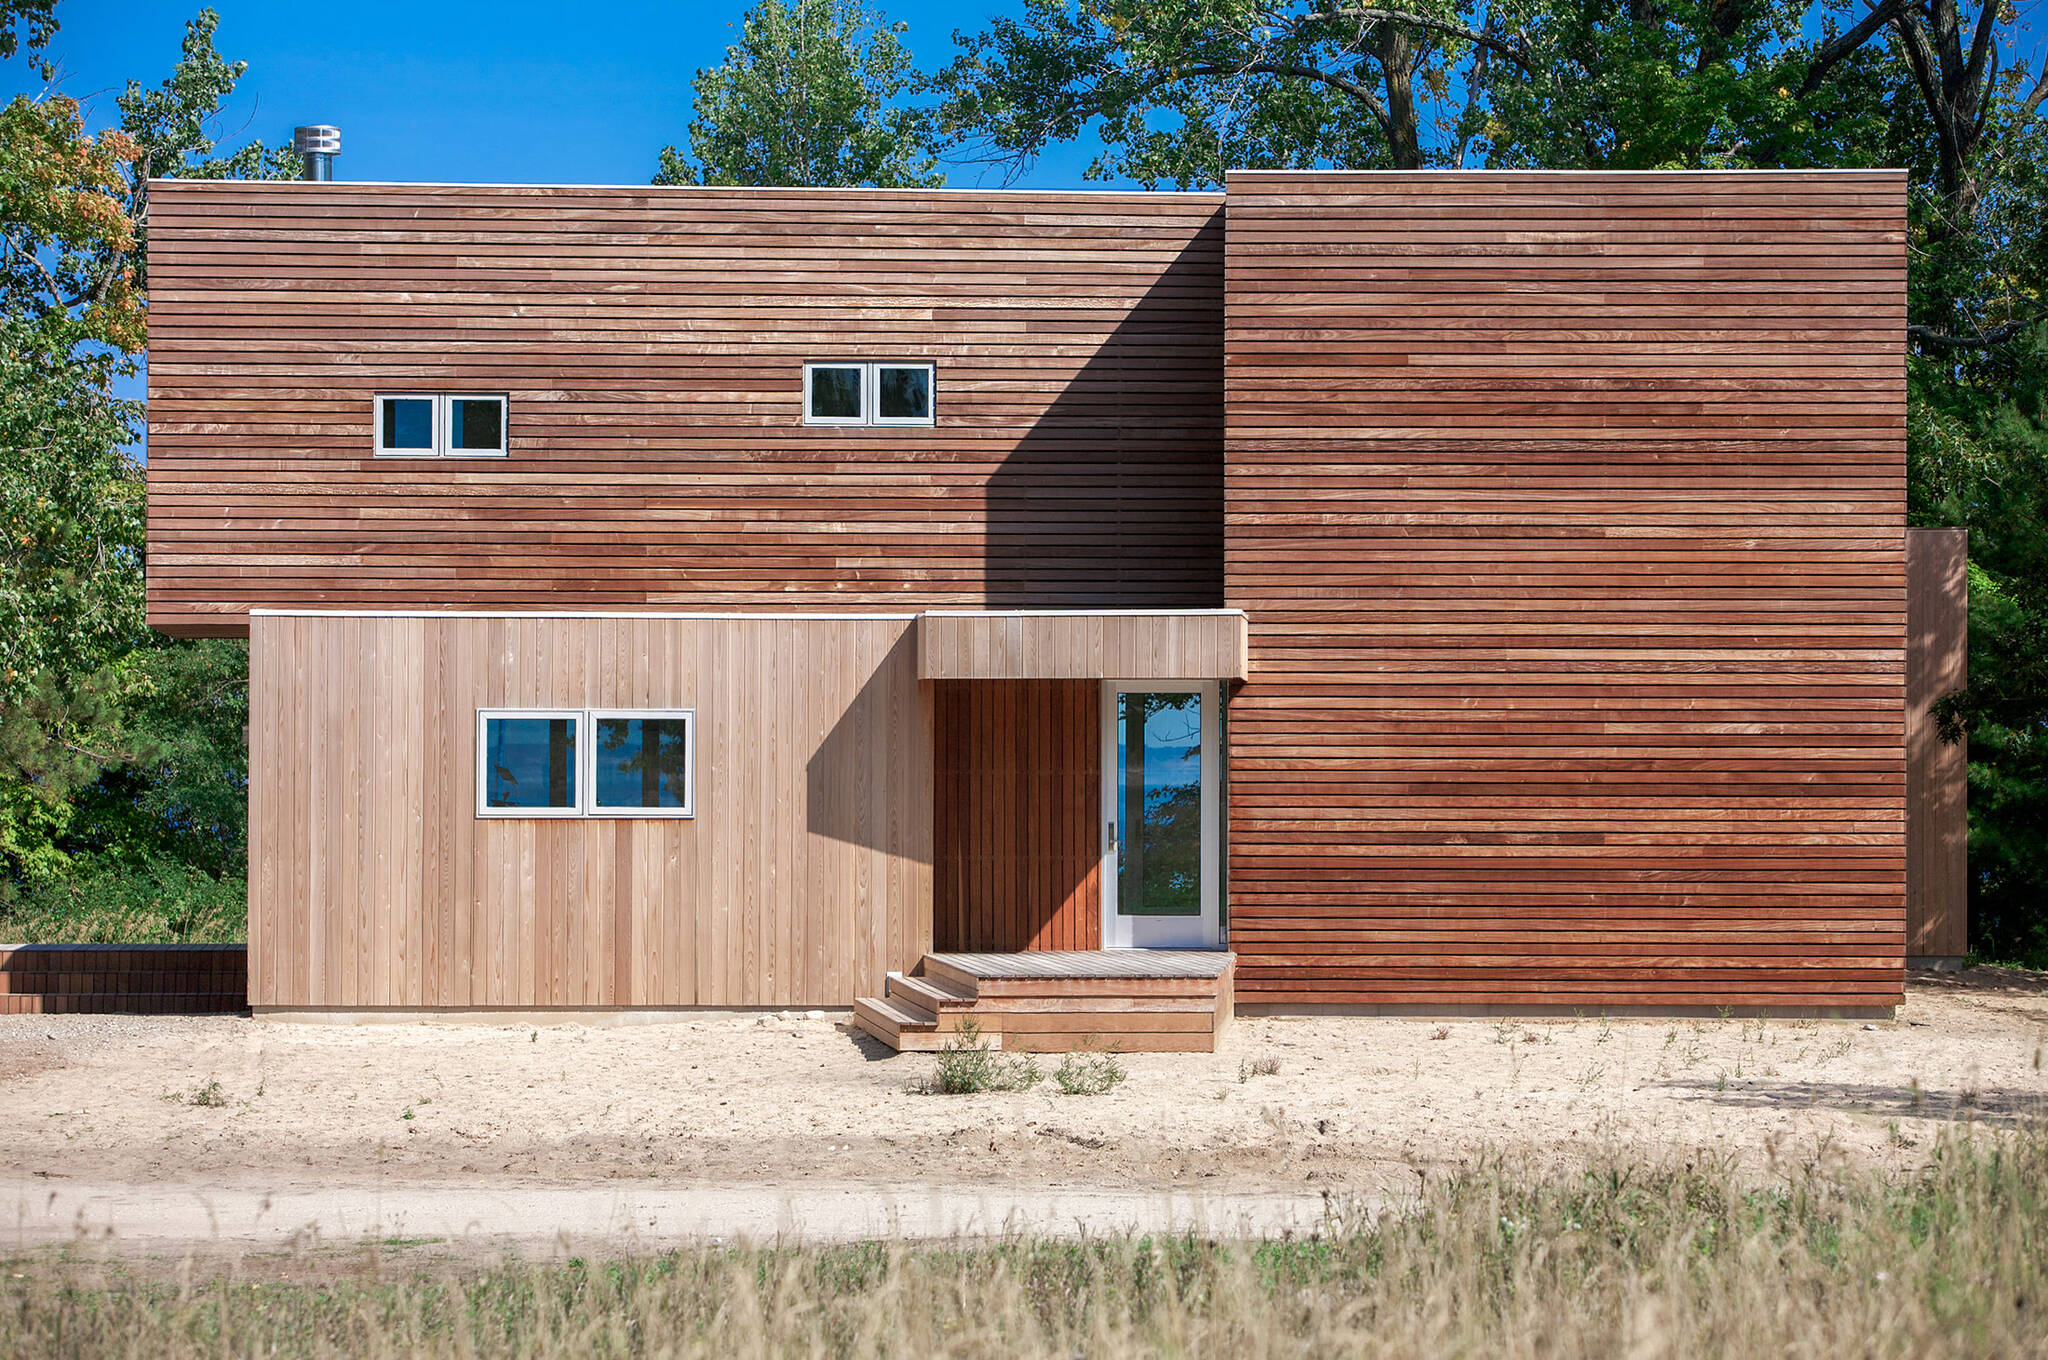 West elevation of the sustainable lake house project in Omena, Michigan designed by the architecture studio Danny Forster & Architecture